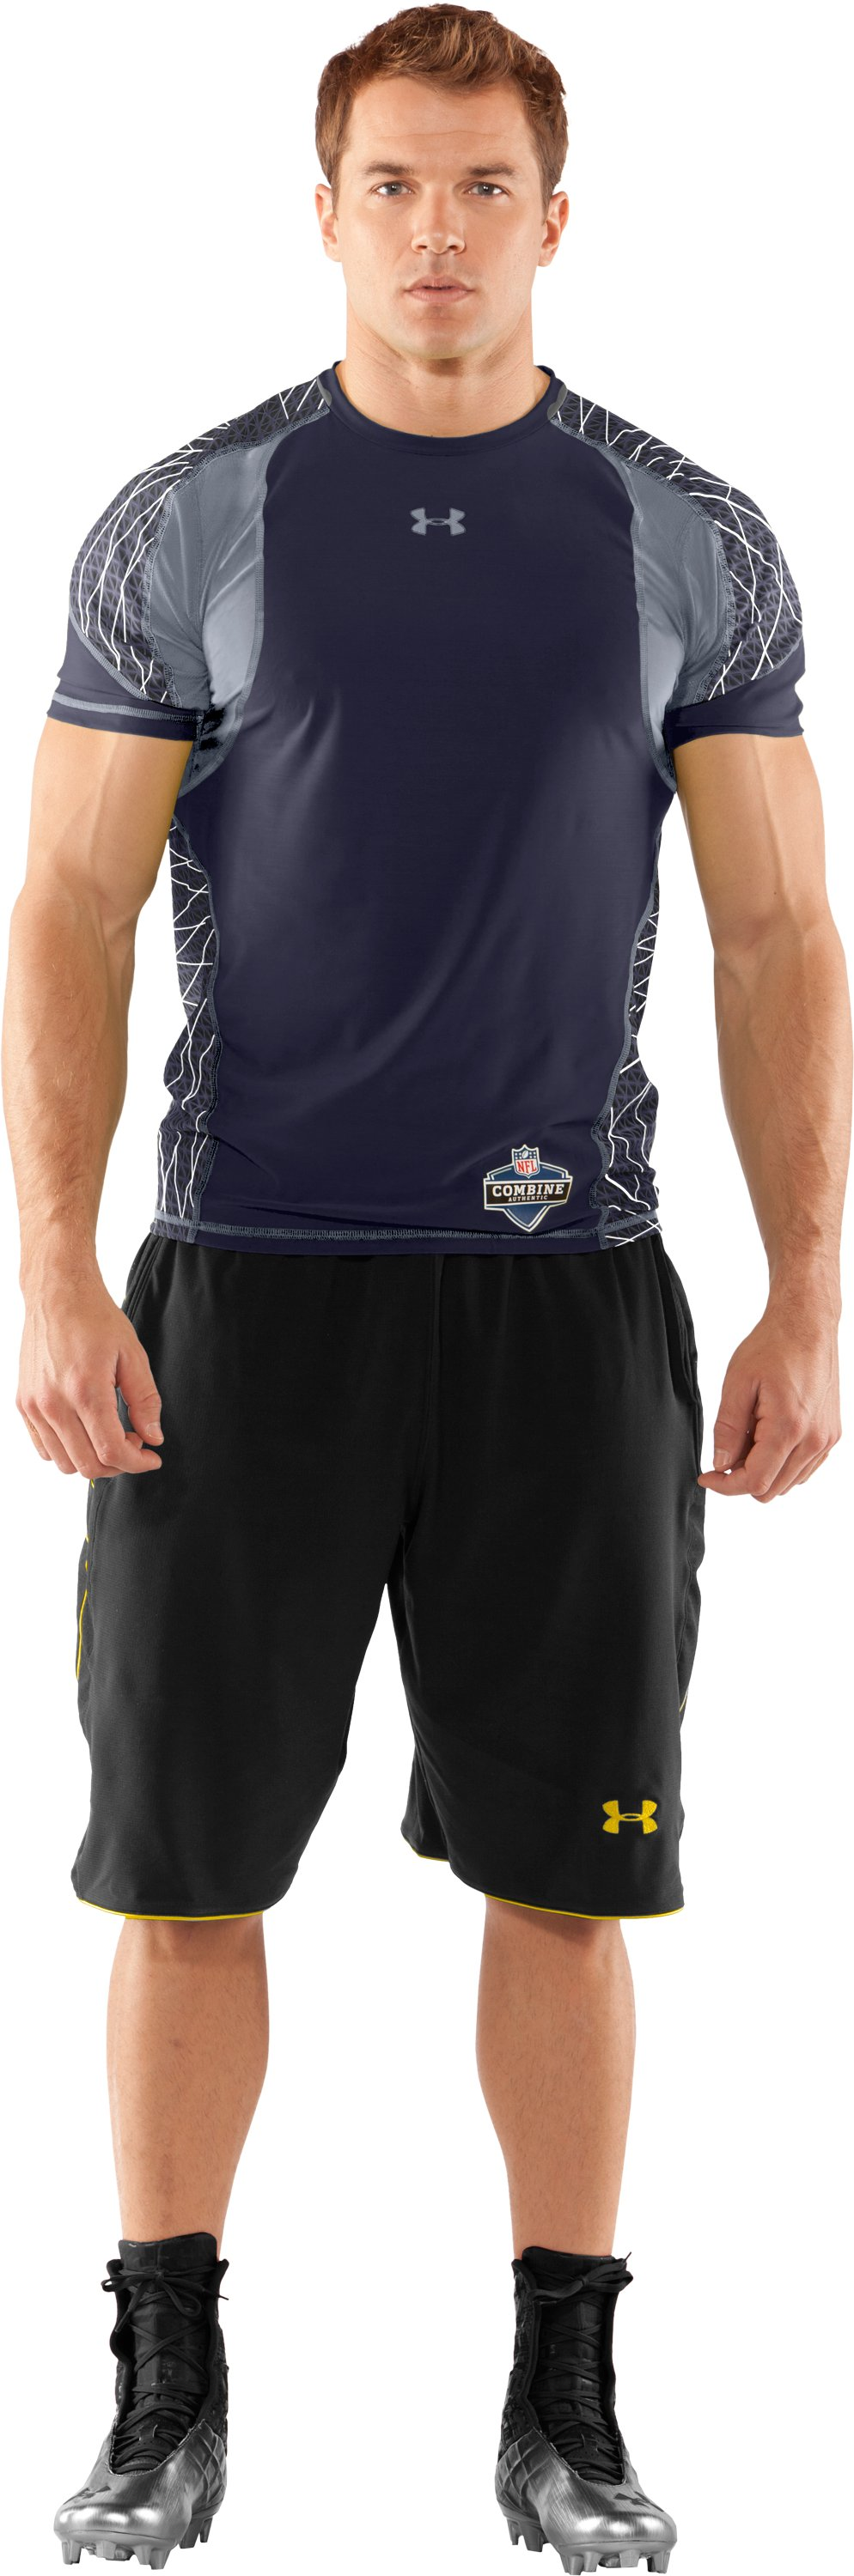 Men's NFL Combine Authentic Warp Speed Short Sleeve, Midnight Navy, Front